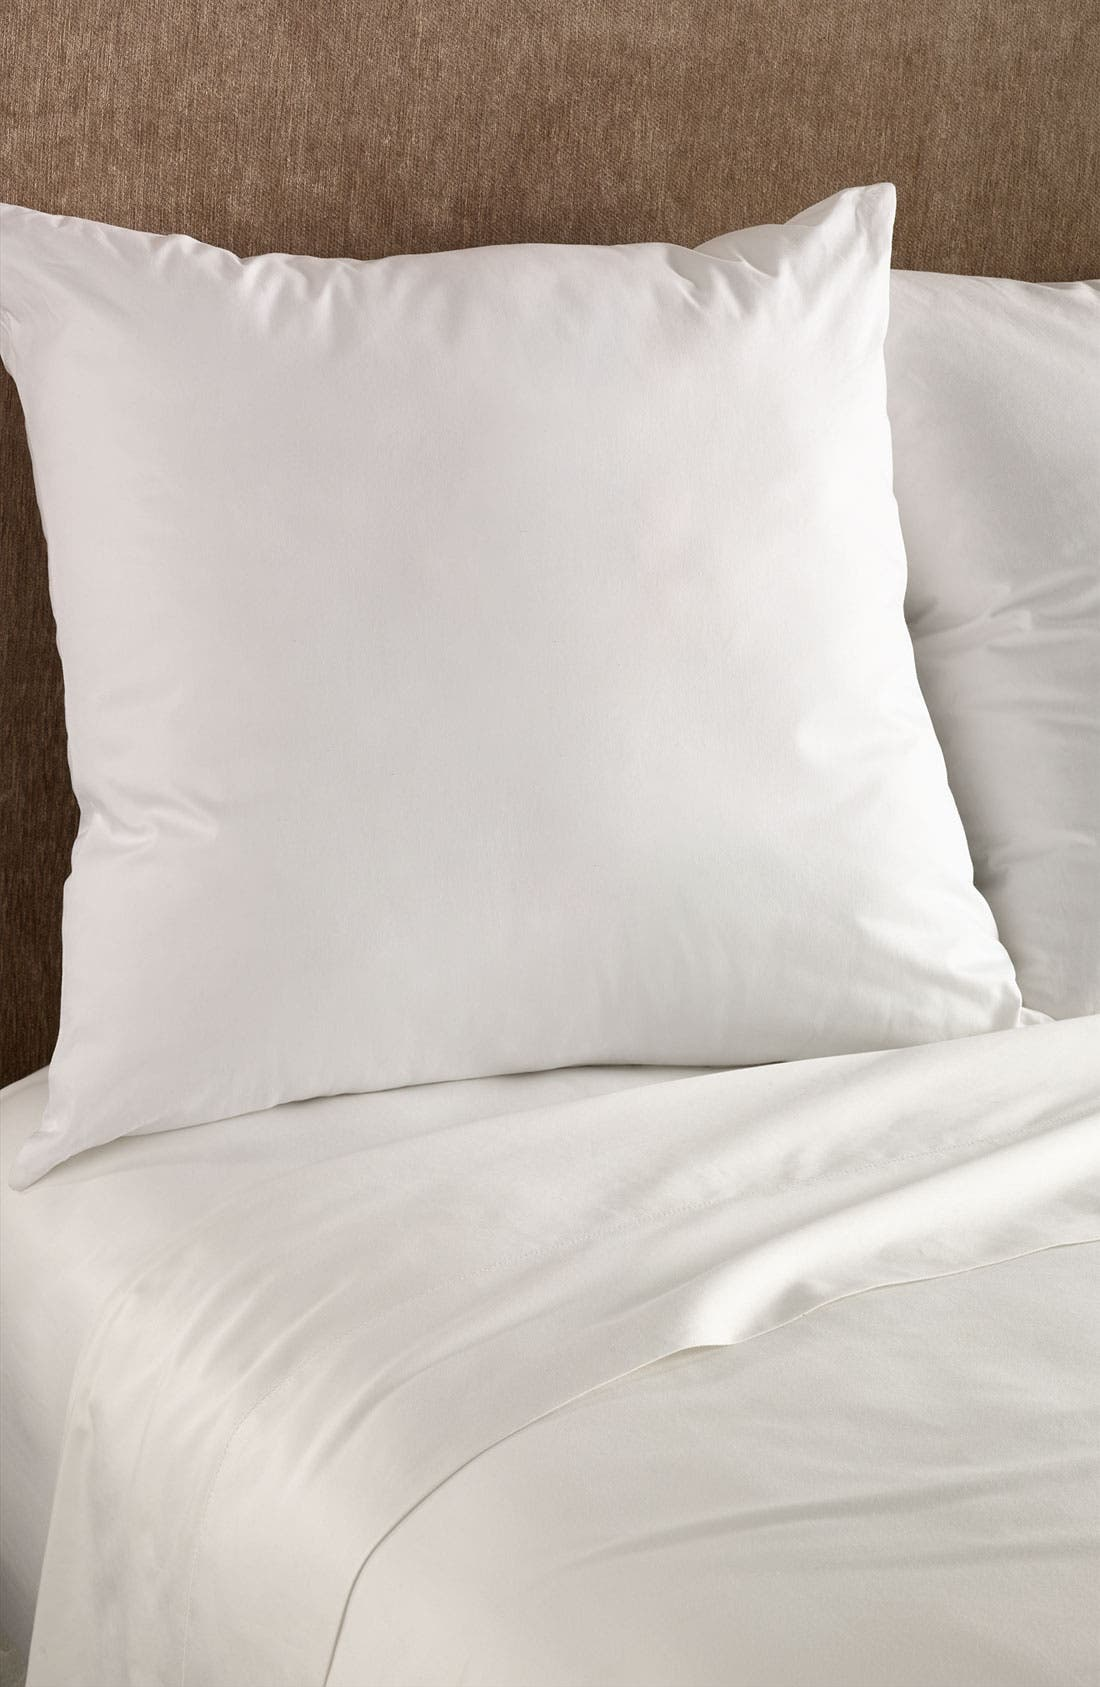 Alternate Image 1 Selected - Westin At Home Euro Pillow